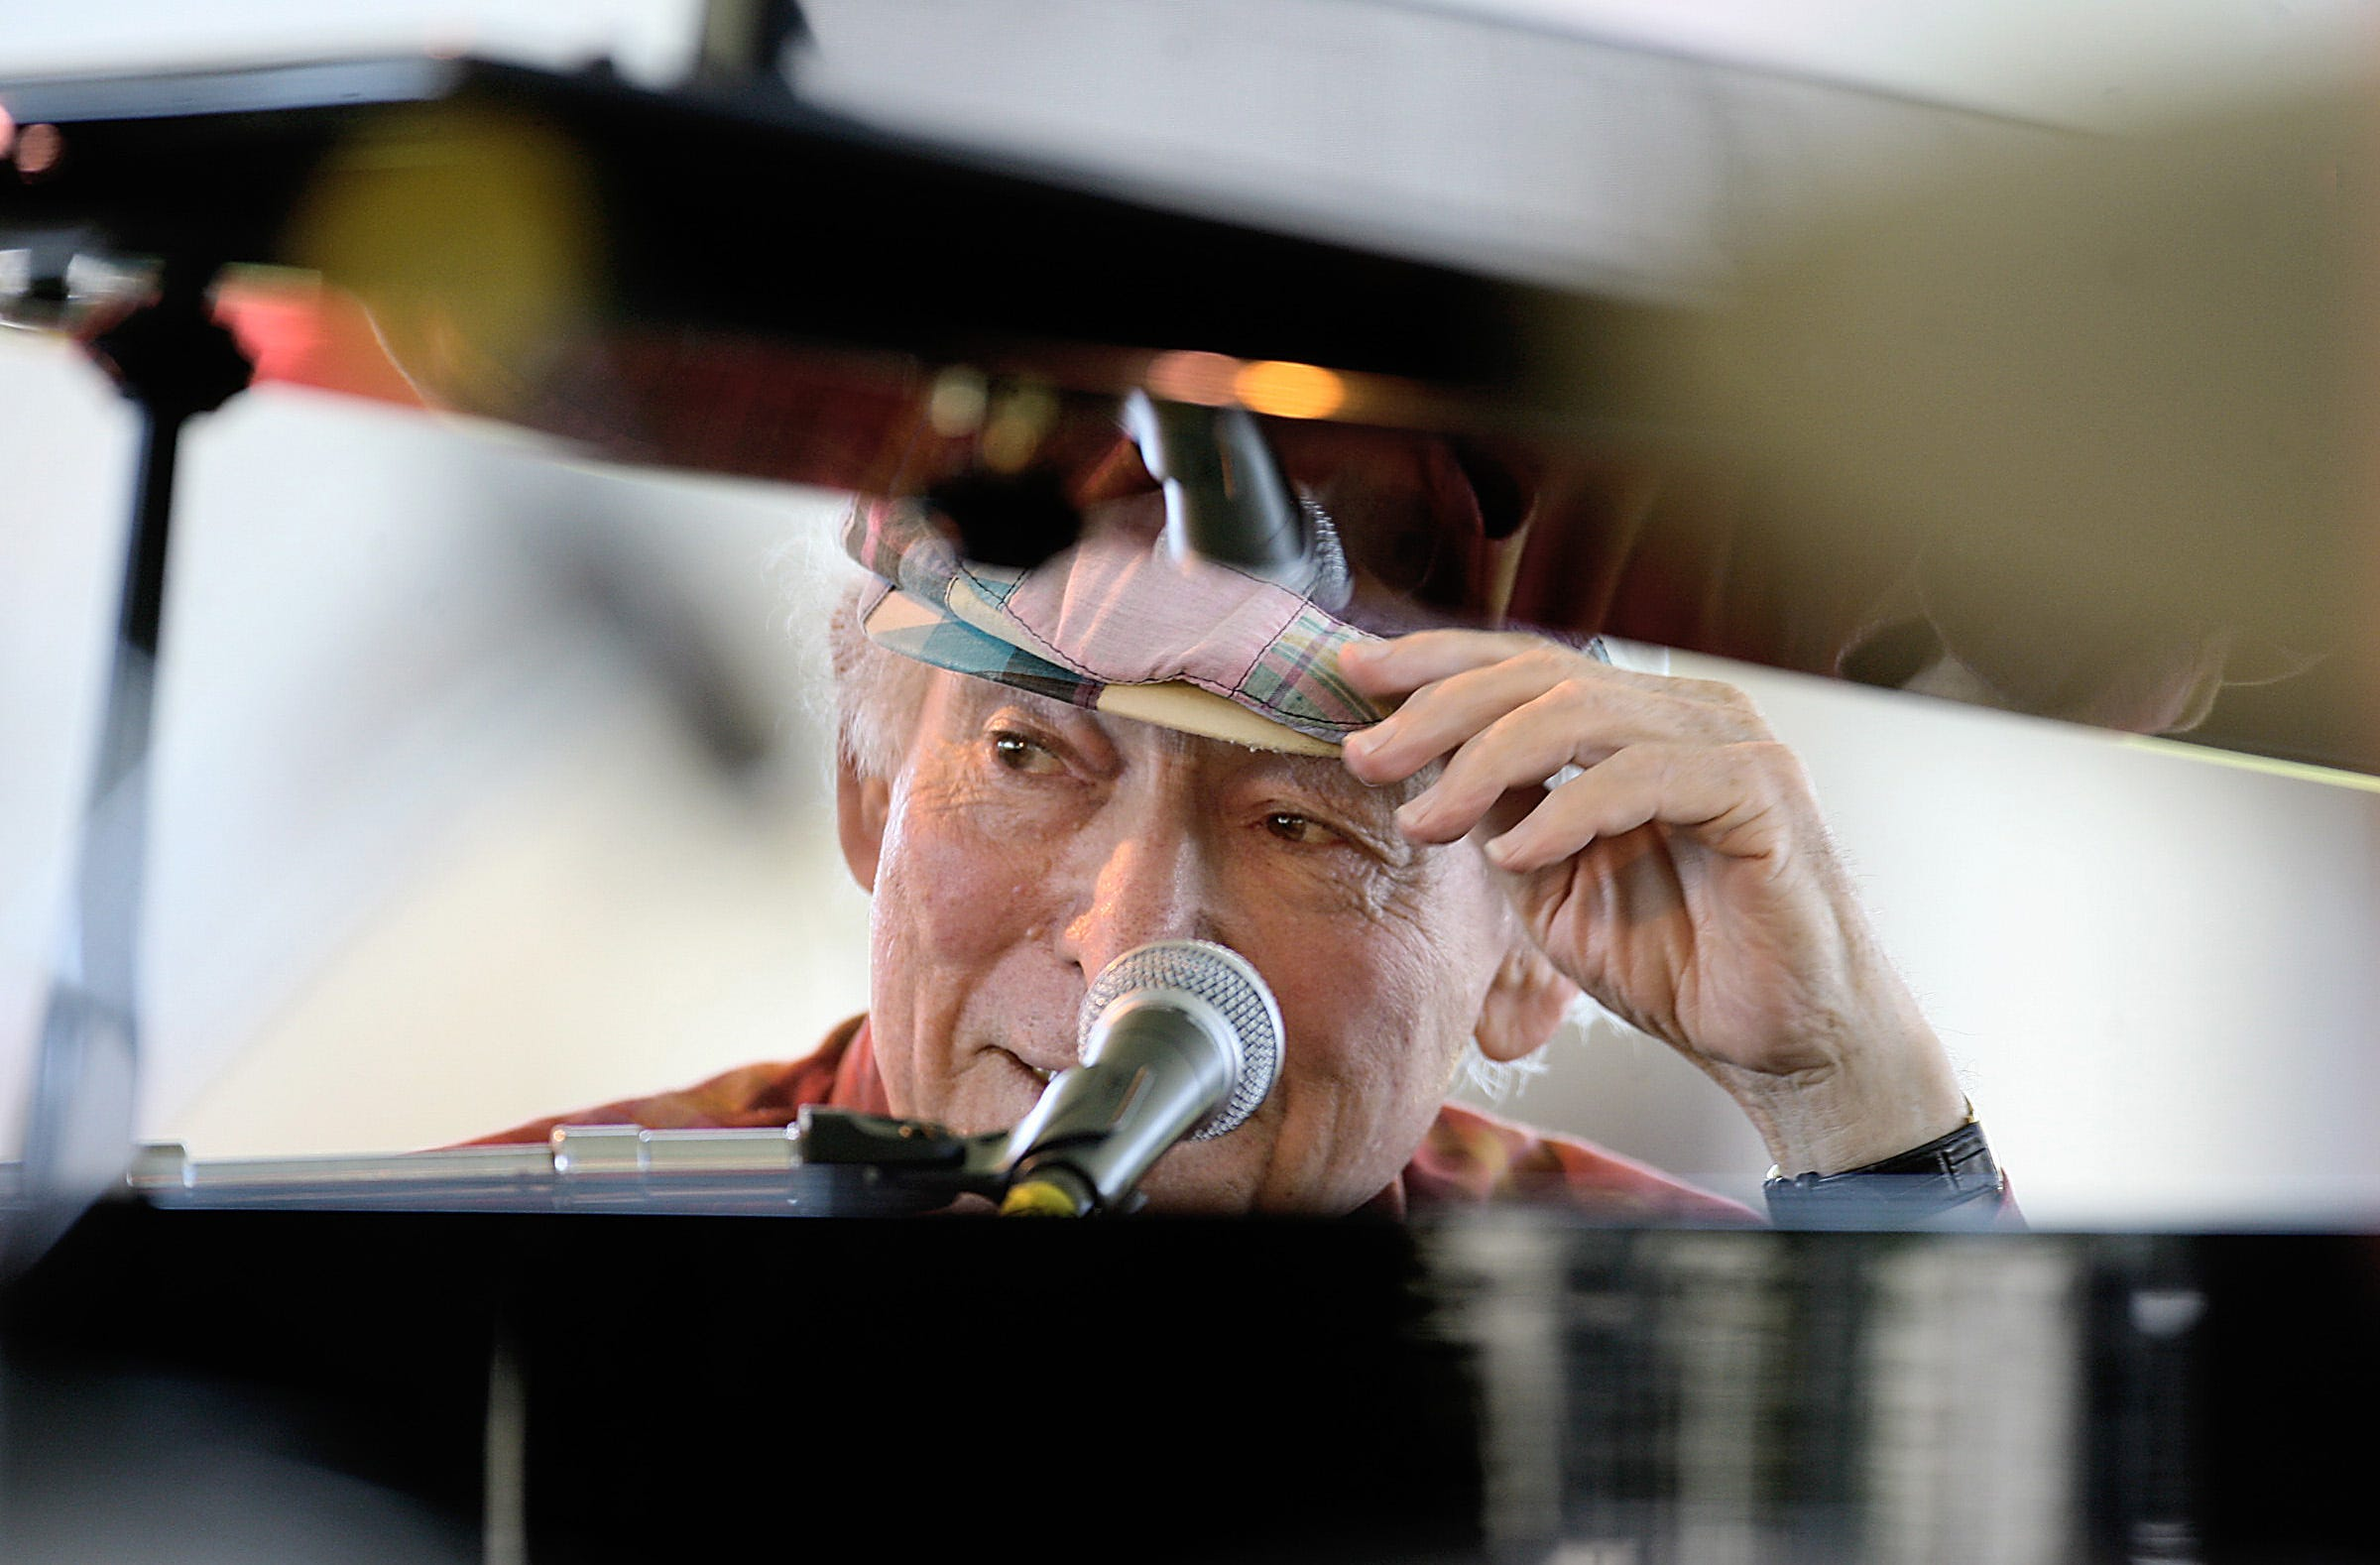 OPINION/SPARE CHANGE: George Wein s impact on music cannot be overstated